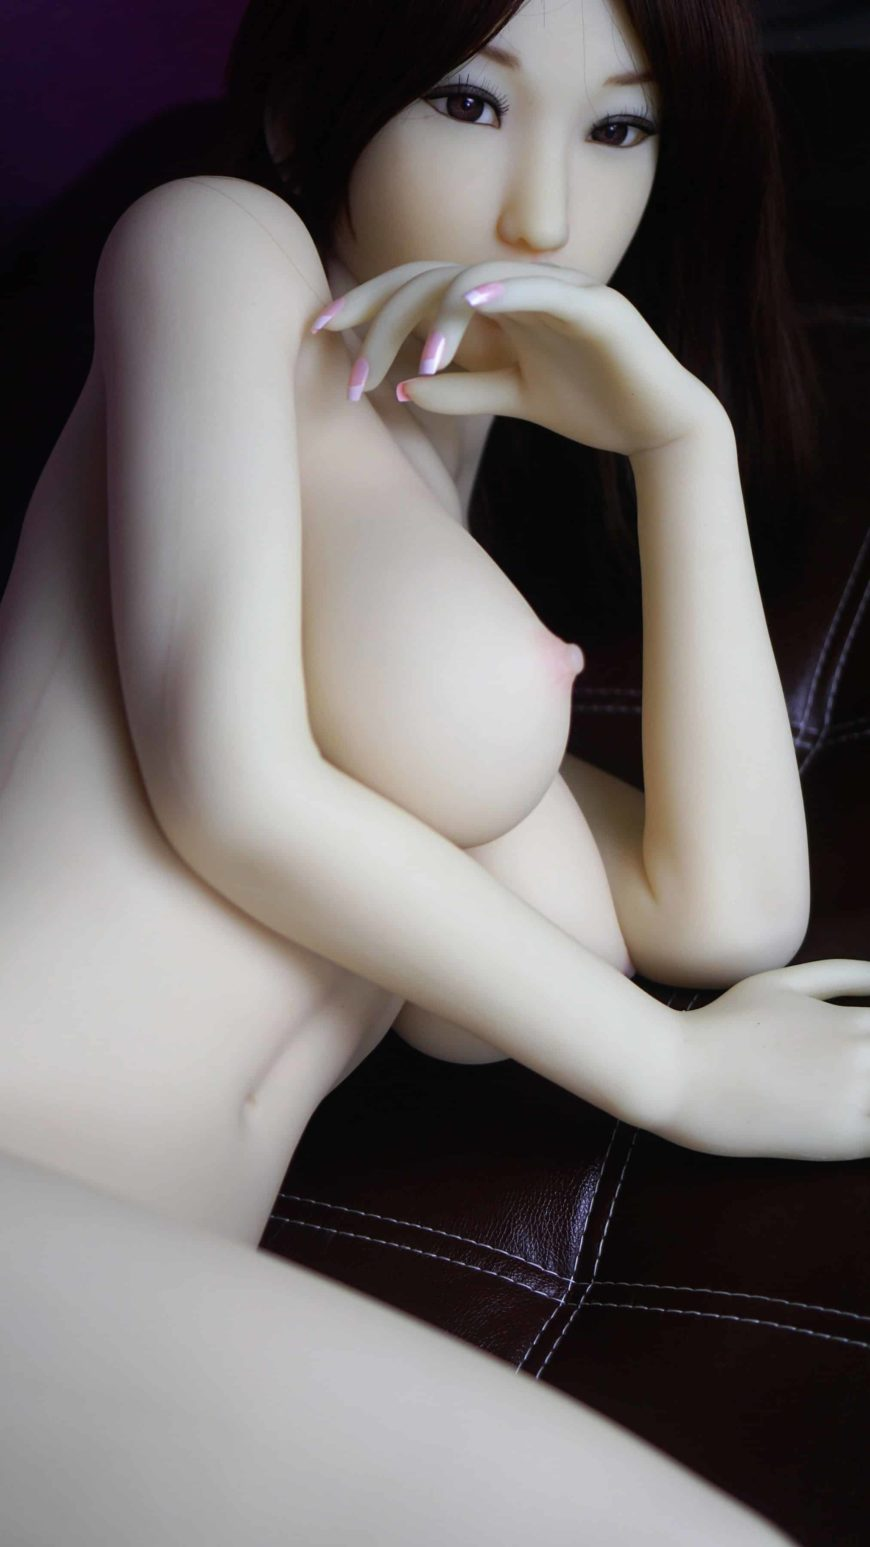 Sex-Doll-Posing-Nude-For-Dirty-Knights-sex-dolls-1 (22)